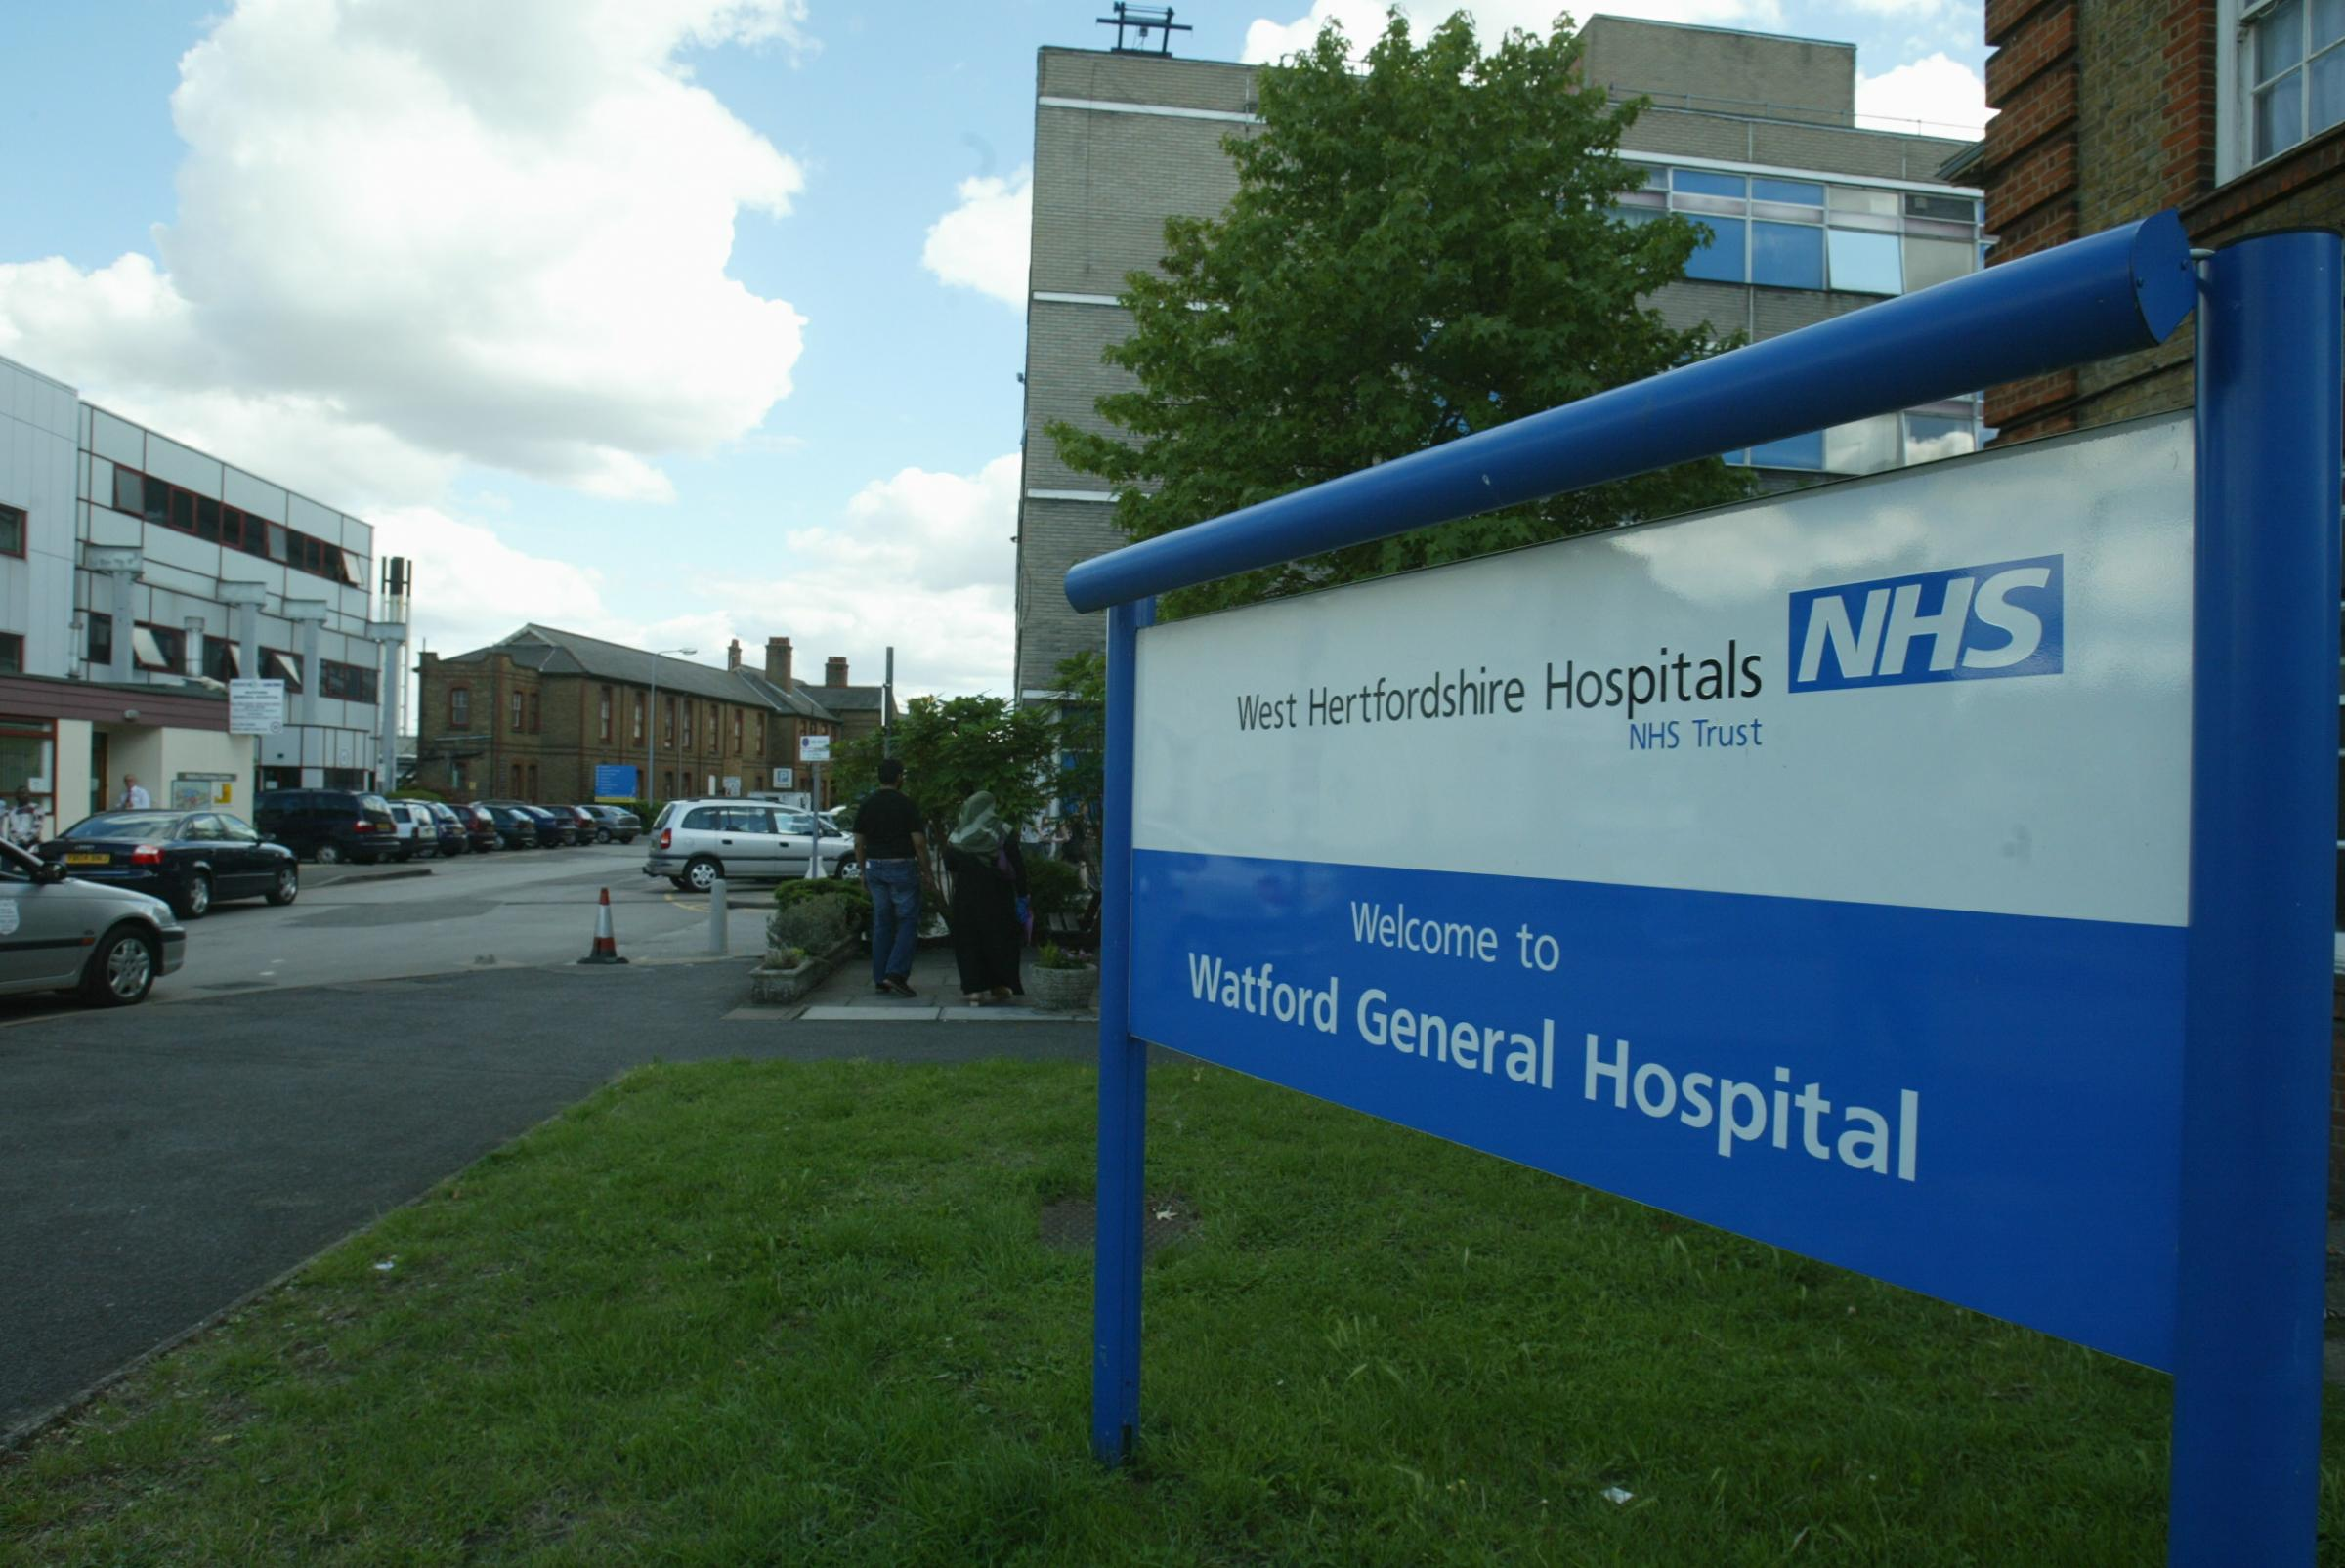 The Government has decided to continue the renovation of Watford General Hospital.